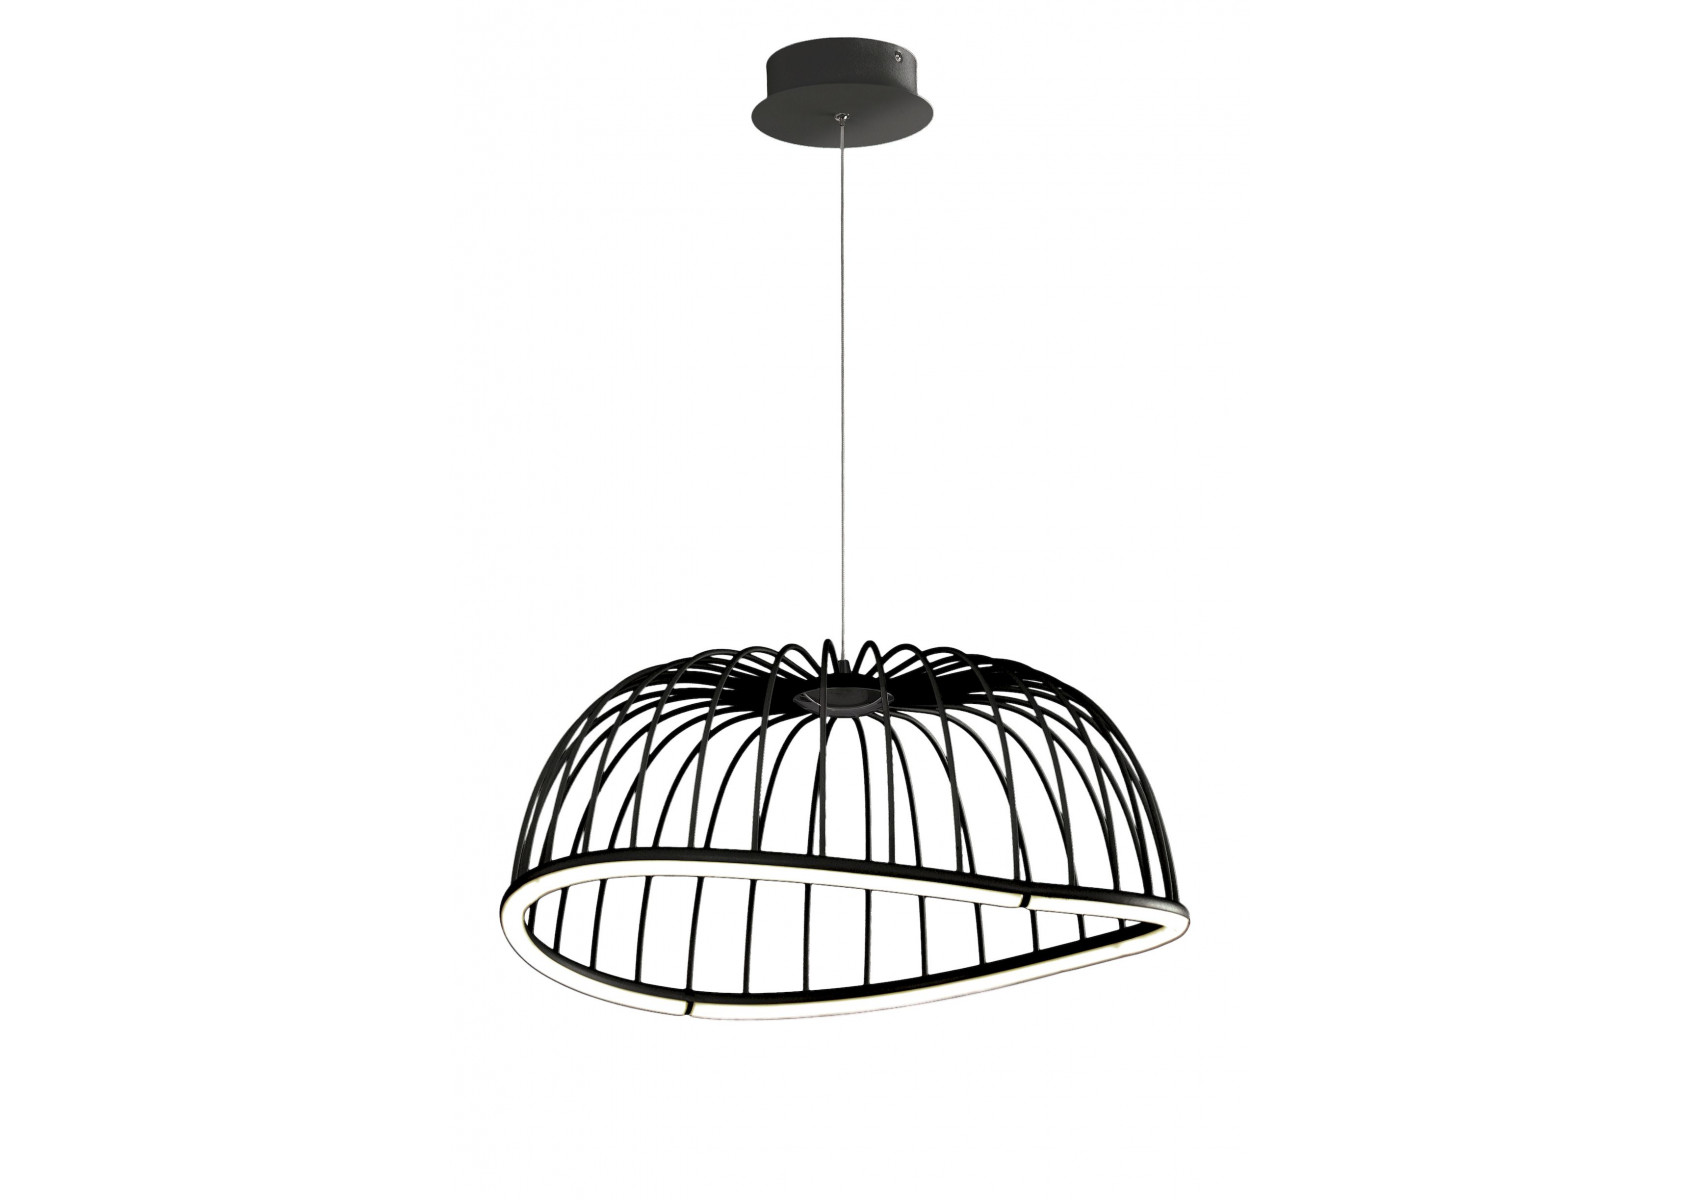 Chapeau De Lampe Suspension Led Chapeau Celeste Mantra